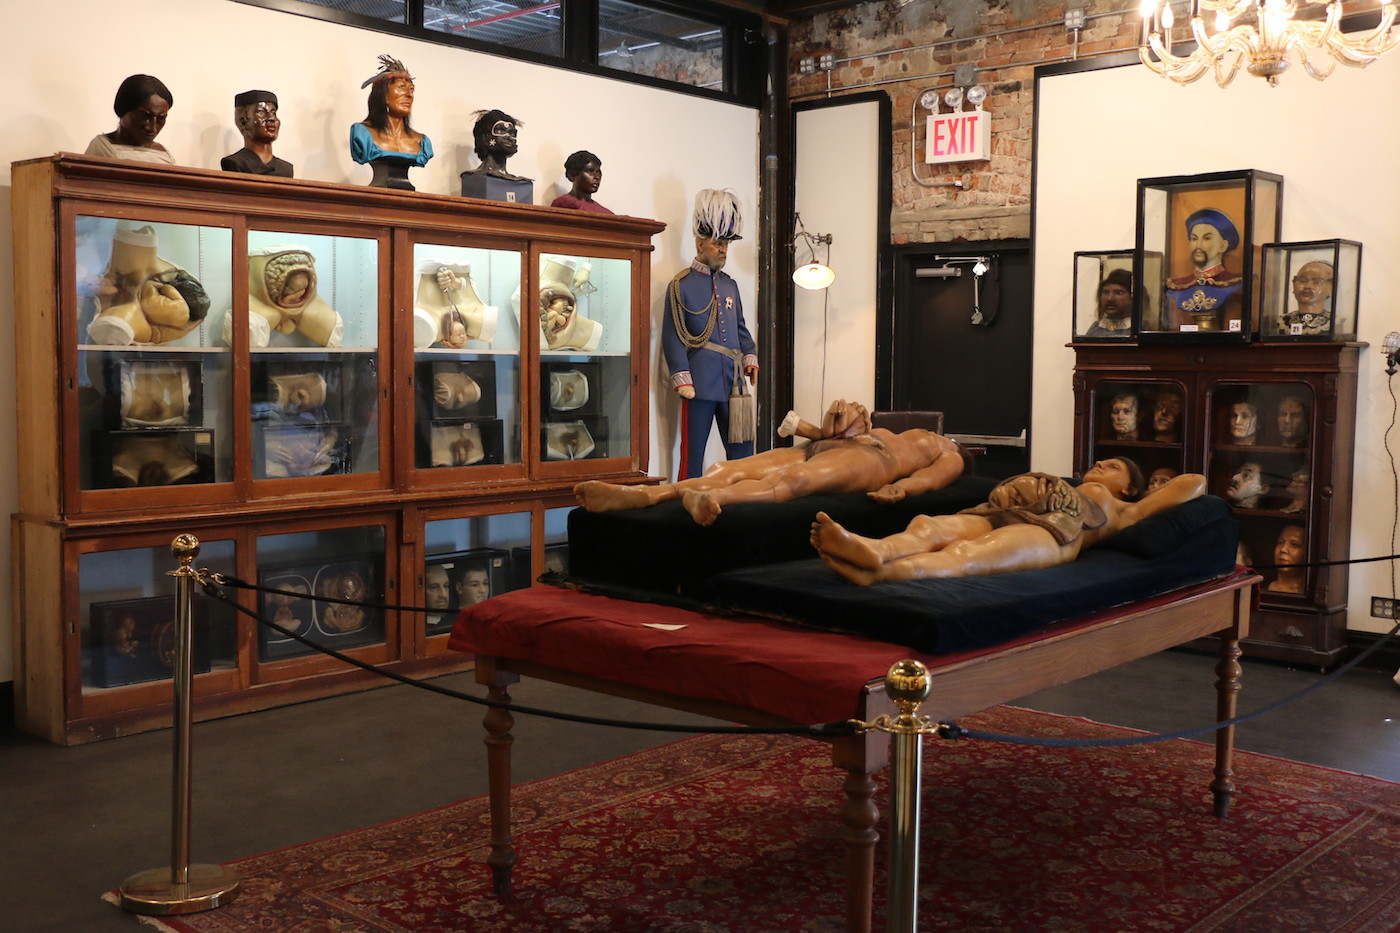 Installation view, 'House of Wax' at the Morbid Anatomy Museum (all photos by Michelle Enemark for Atlas Obscura unless otherwise noted)